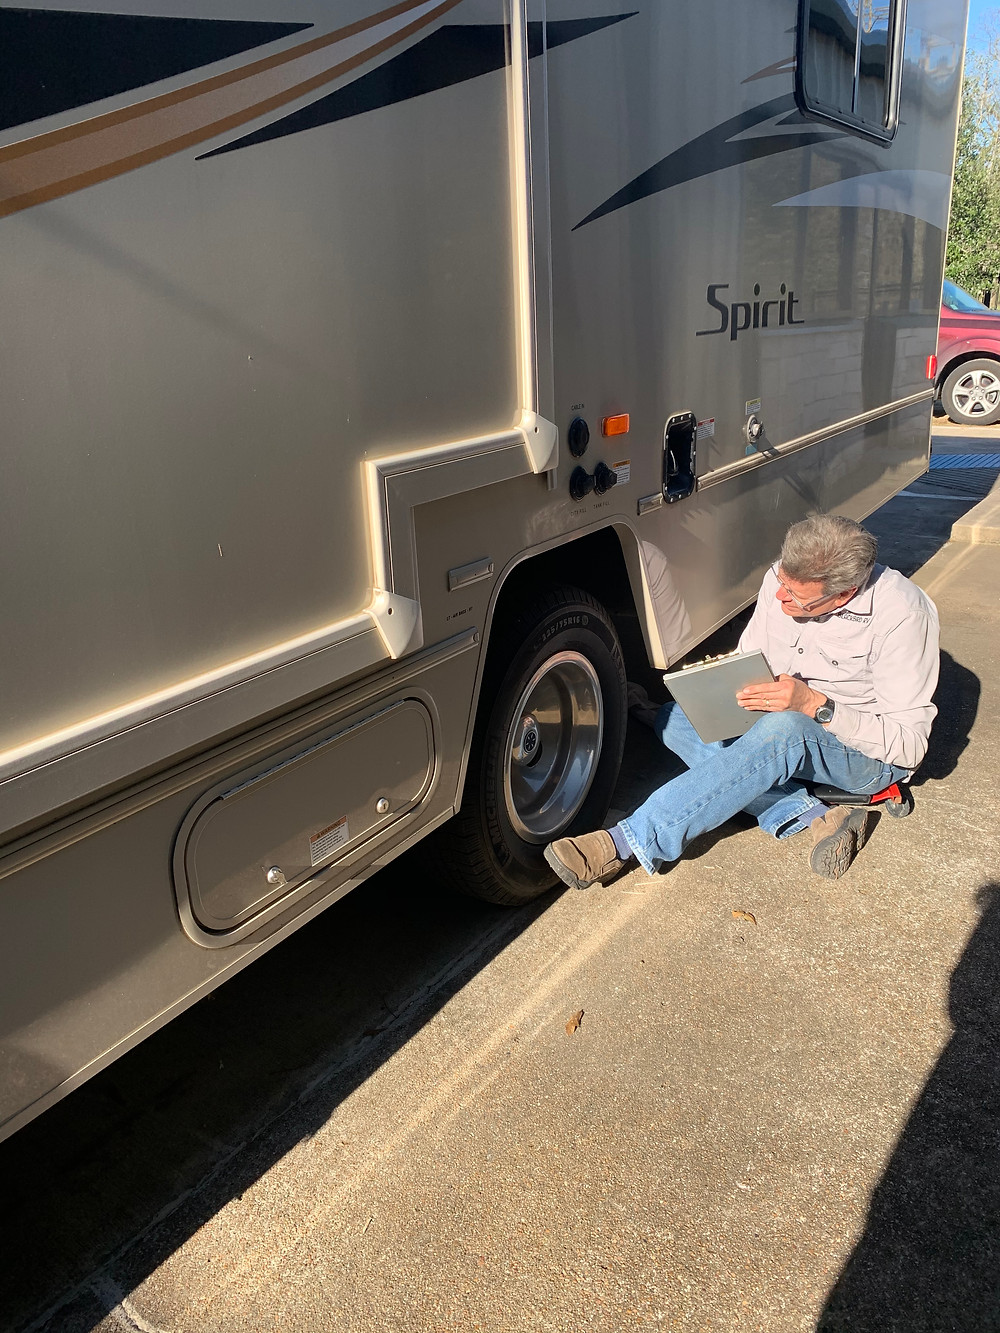 An RV owner avoids common RV mishaps by having his trailer inspected.